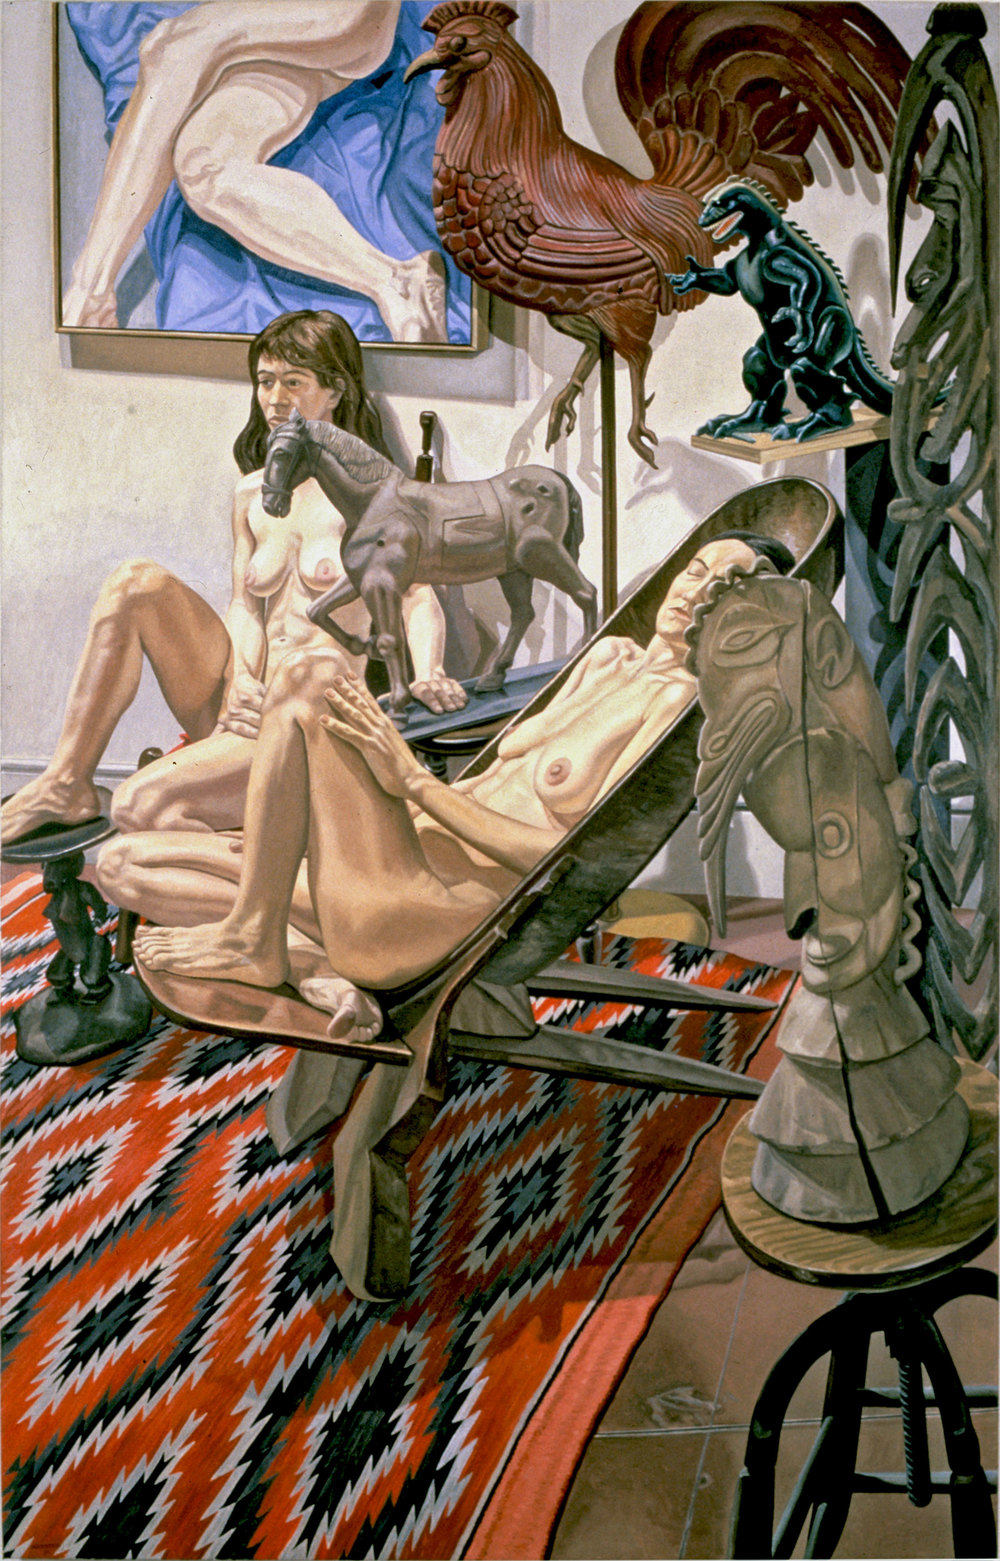 MODELS WITH GODZILLA, ETC ., 1990 Oil on canvas 96 x 60 inches